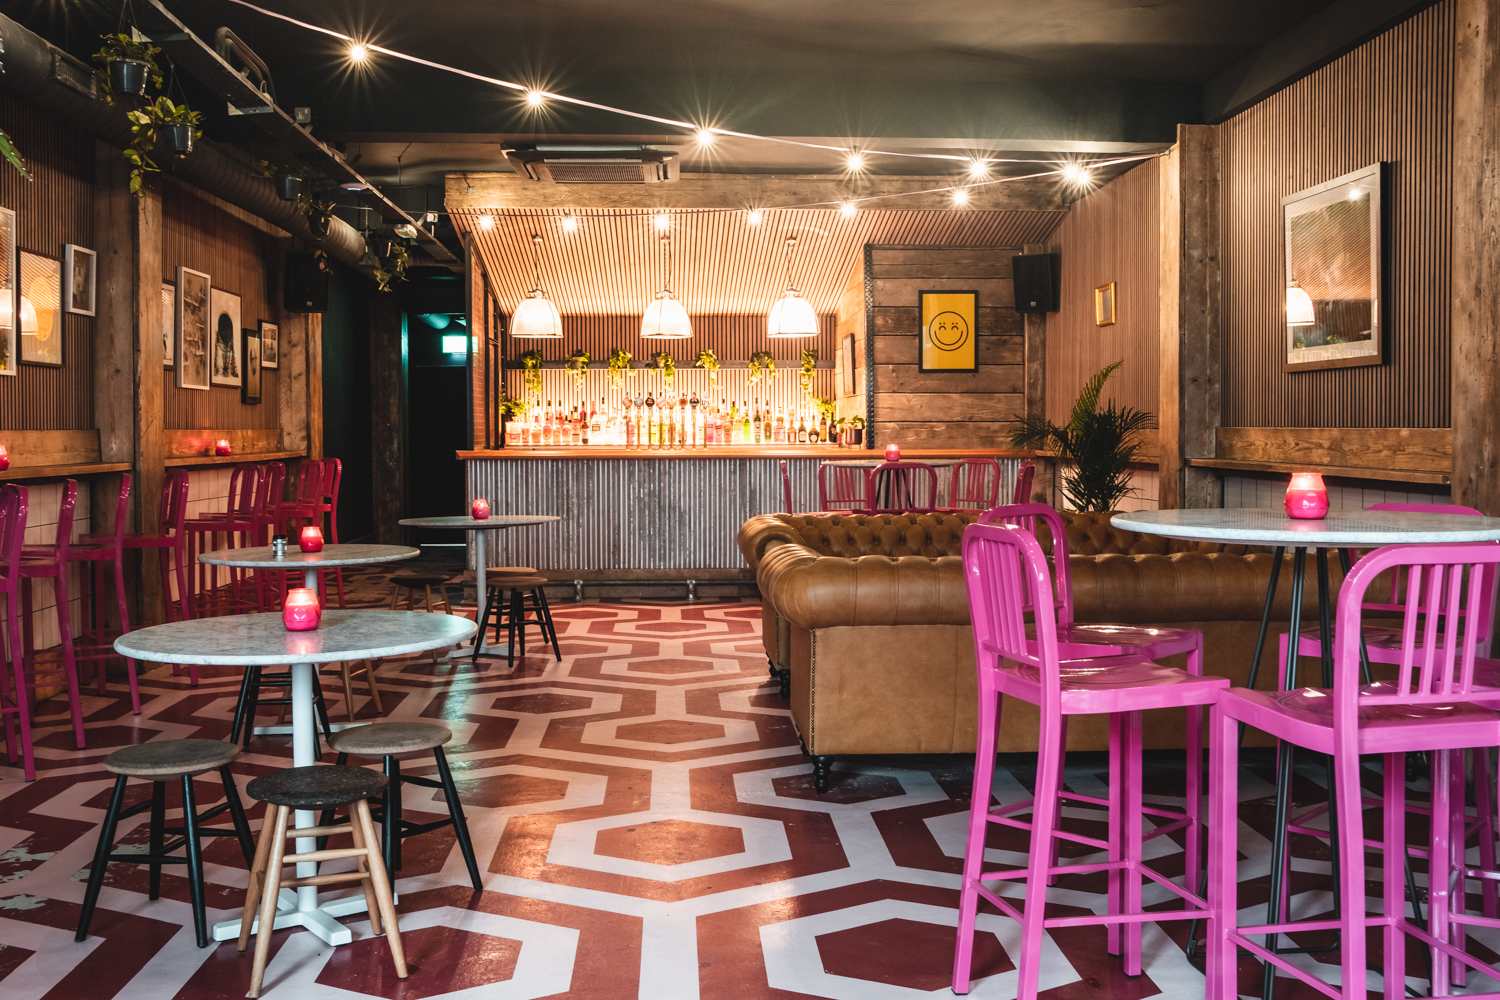 Social club Lost Cat and Bunny Jackson's 'crazy cousin' move into Northern Quarter, The Manc